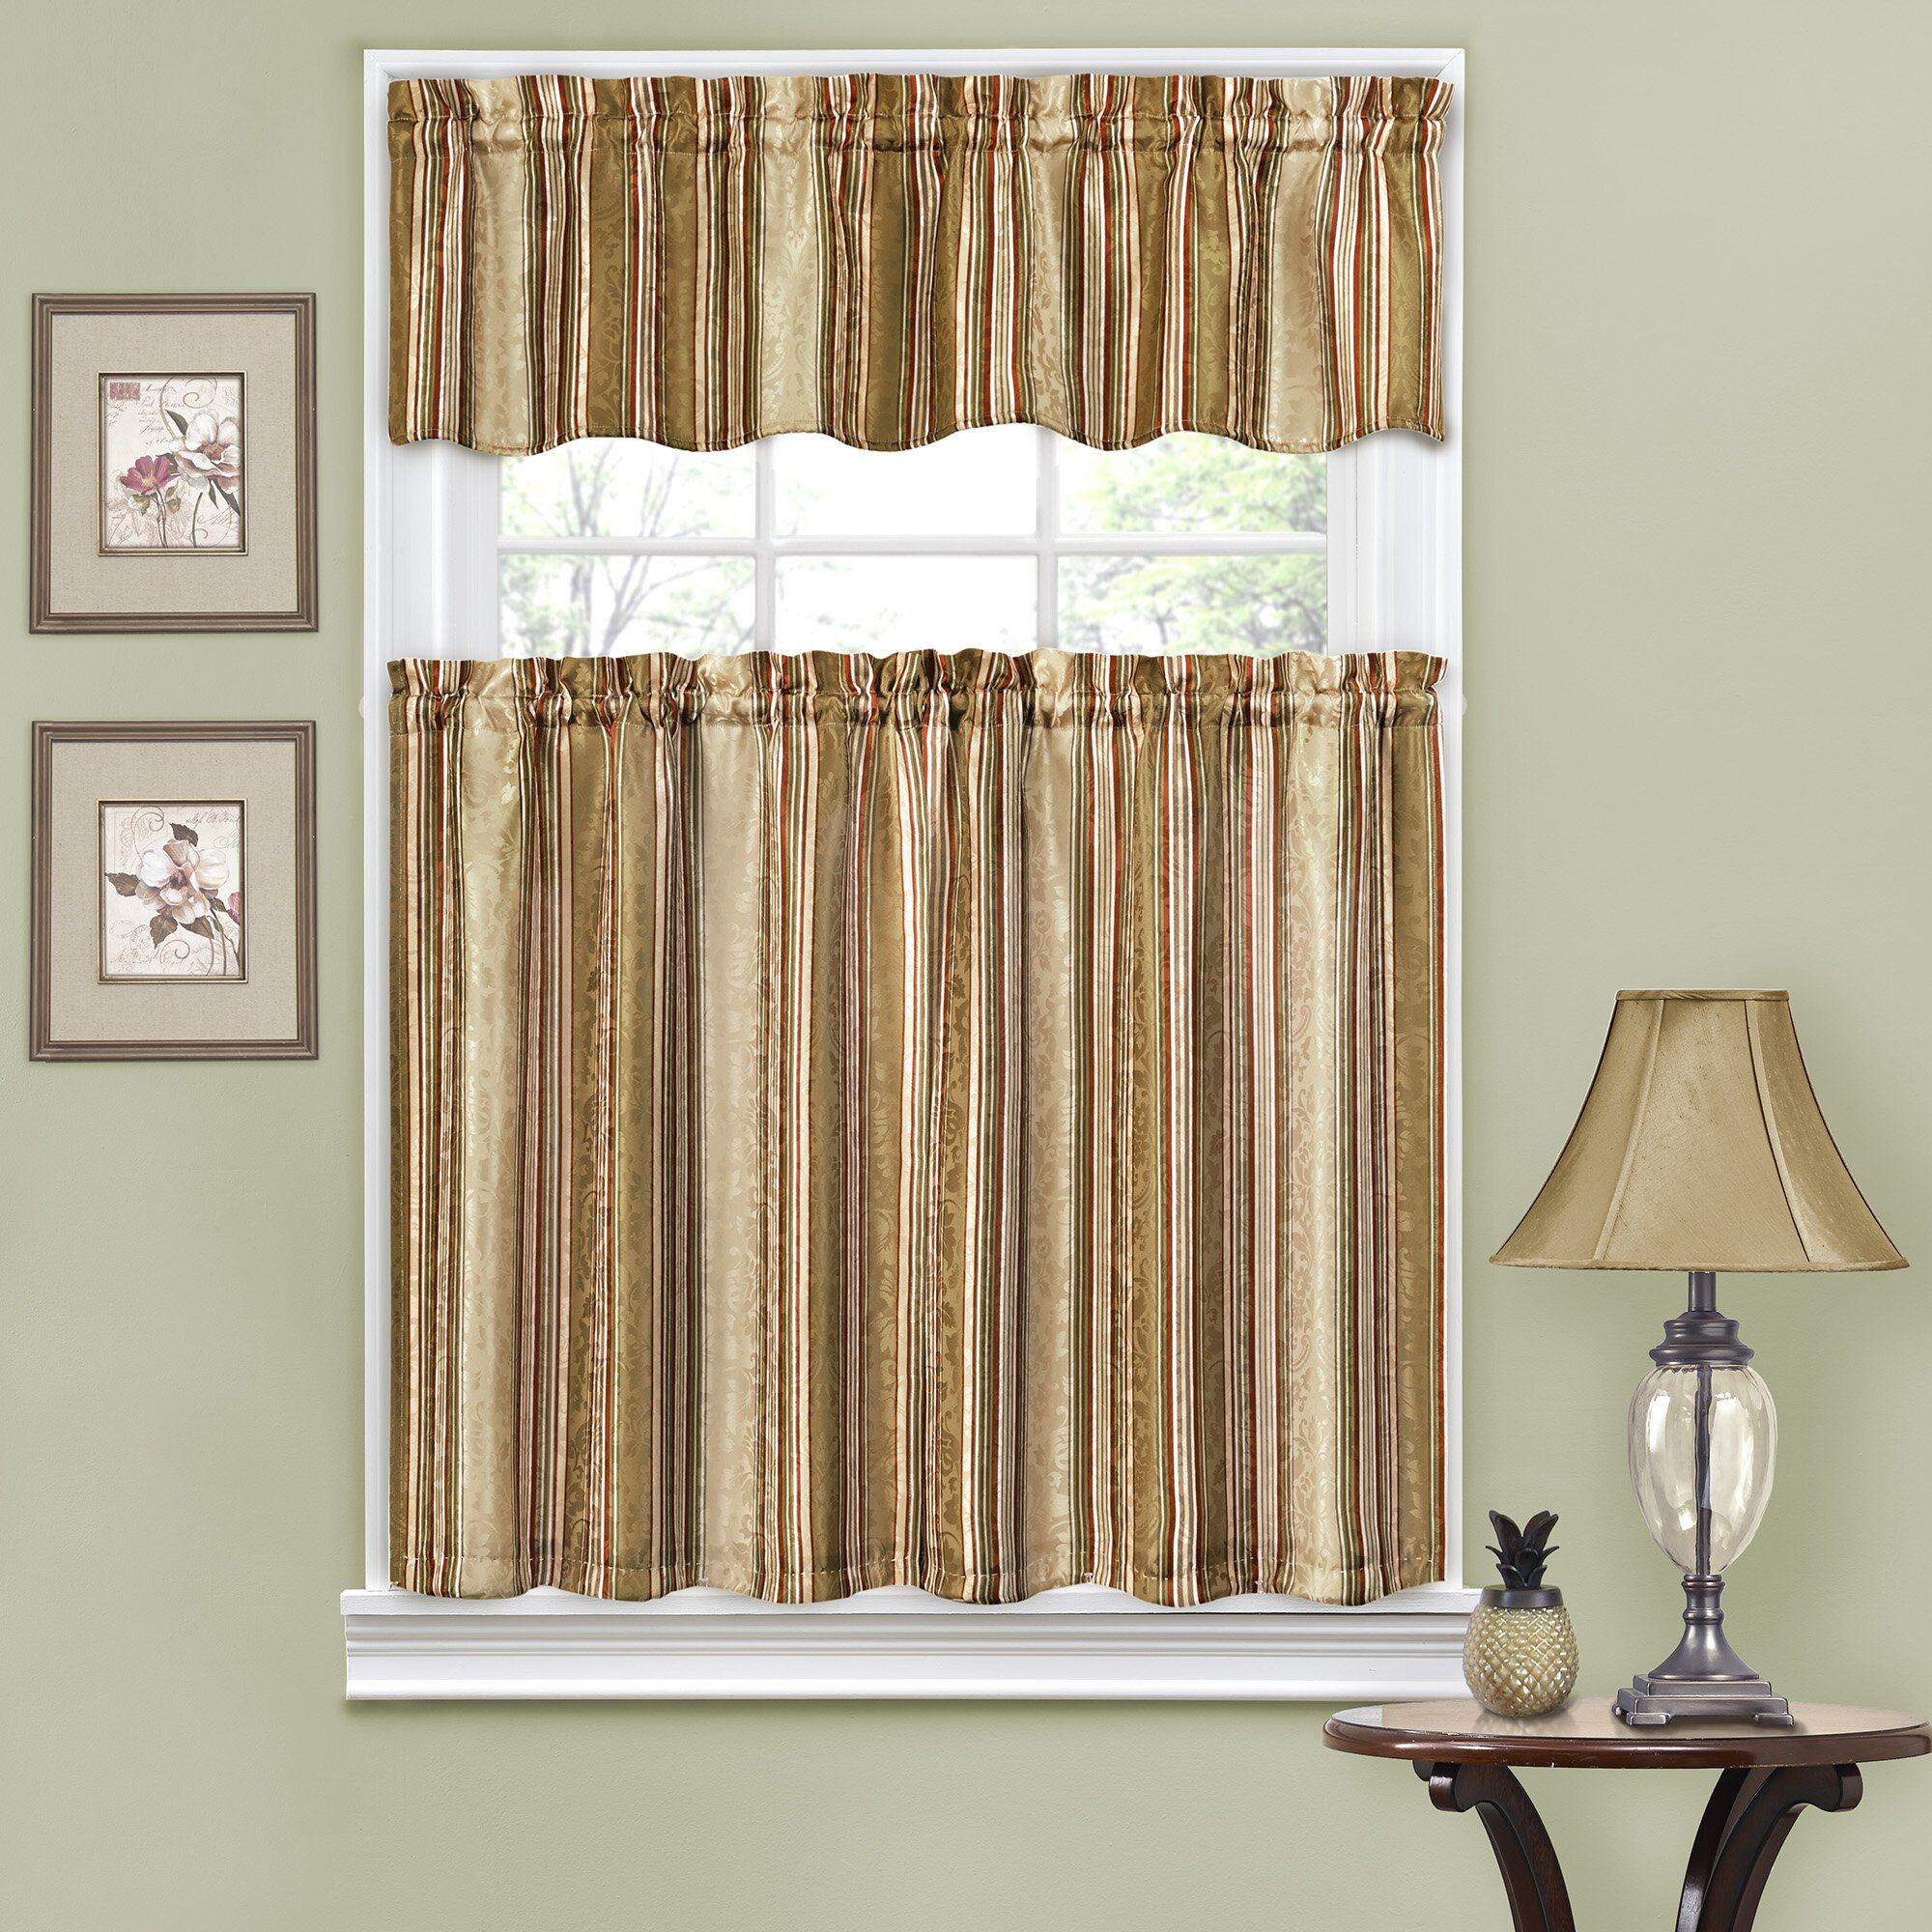 "Traditions By Waverly Stripe Ensemble 52"" Valance And Tier"